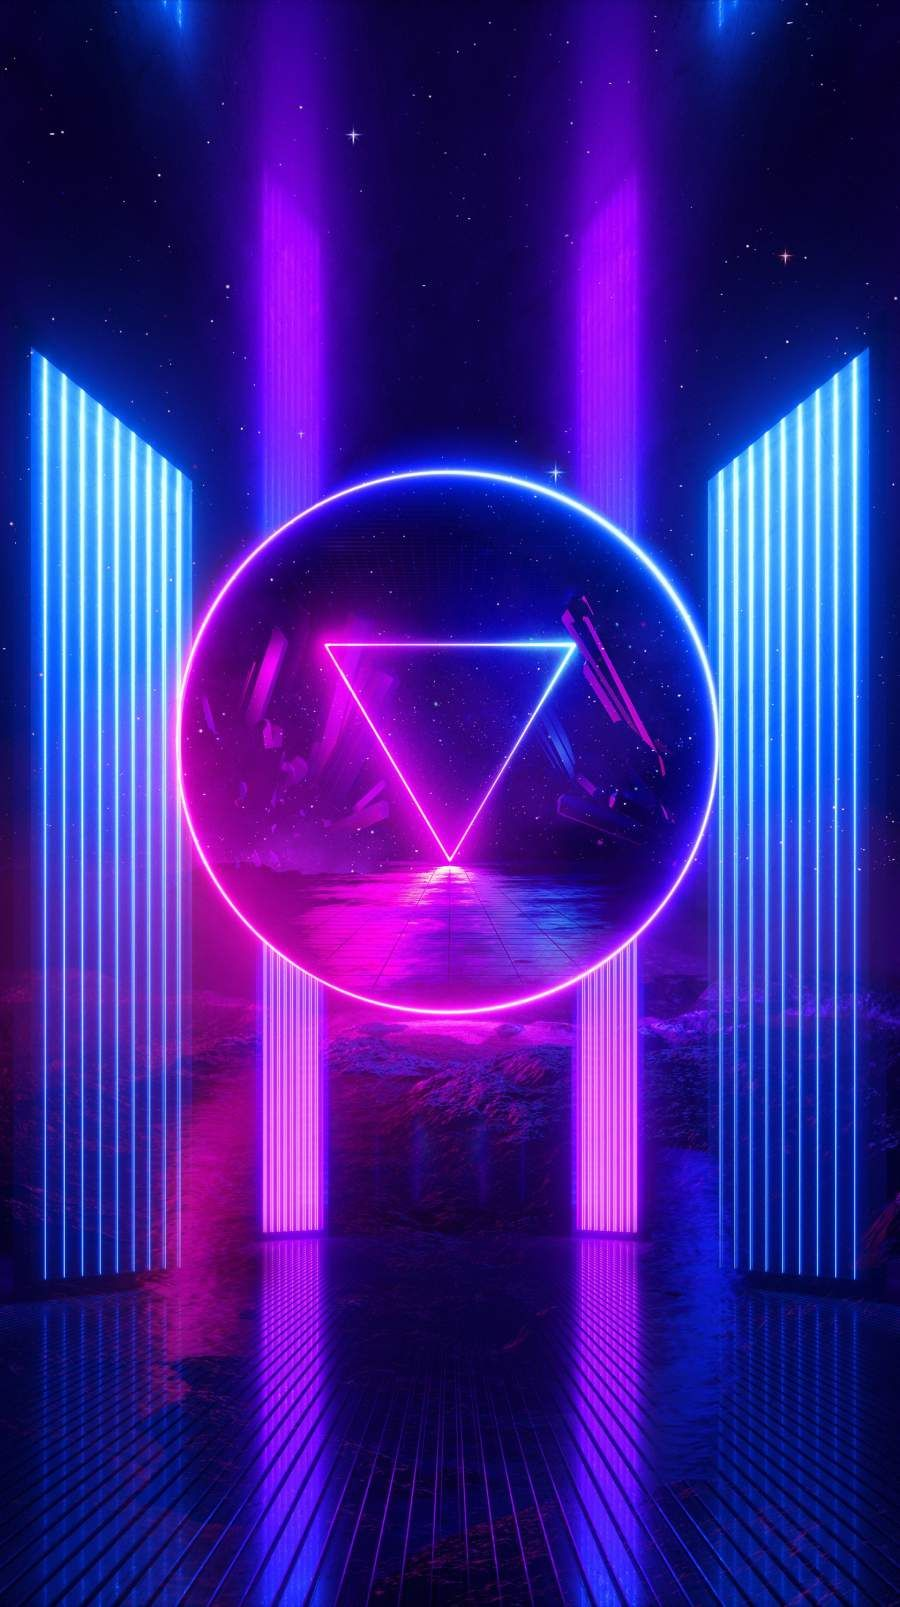 Neon Shine iPhone Wallpaper in 2020 Vaporwave wallpaper